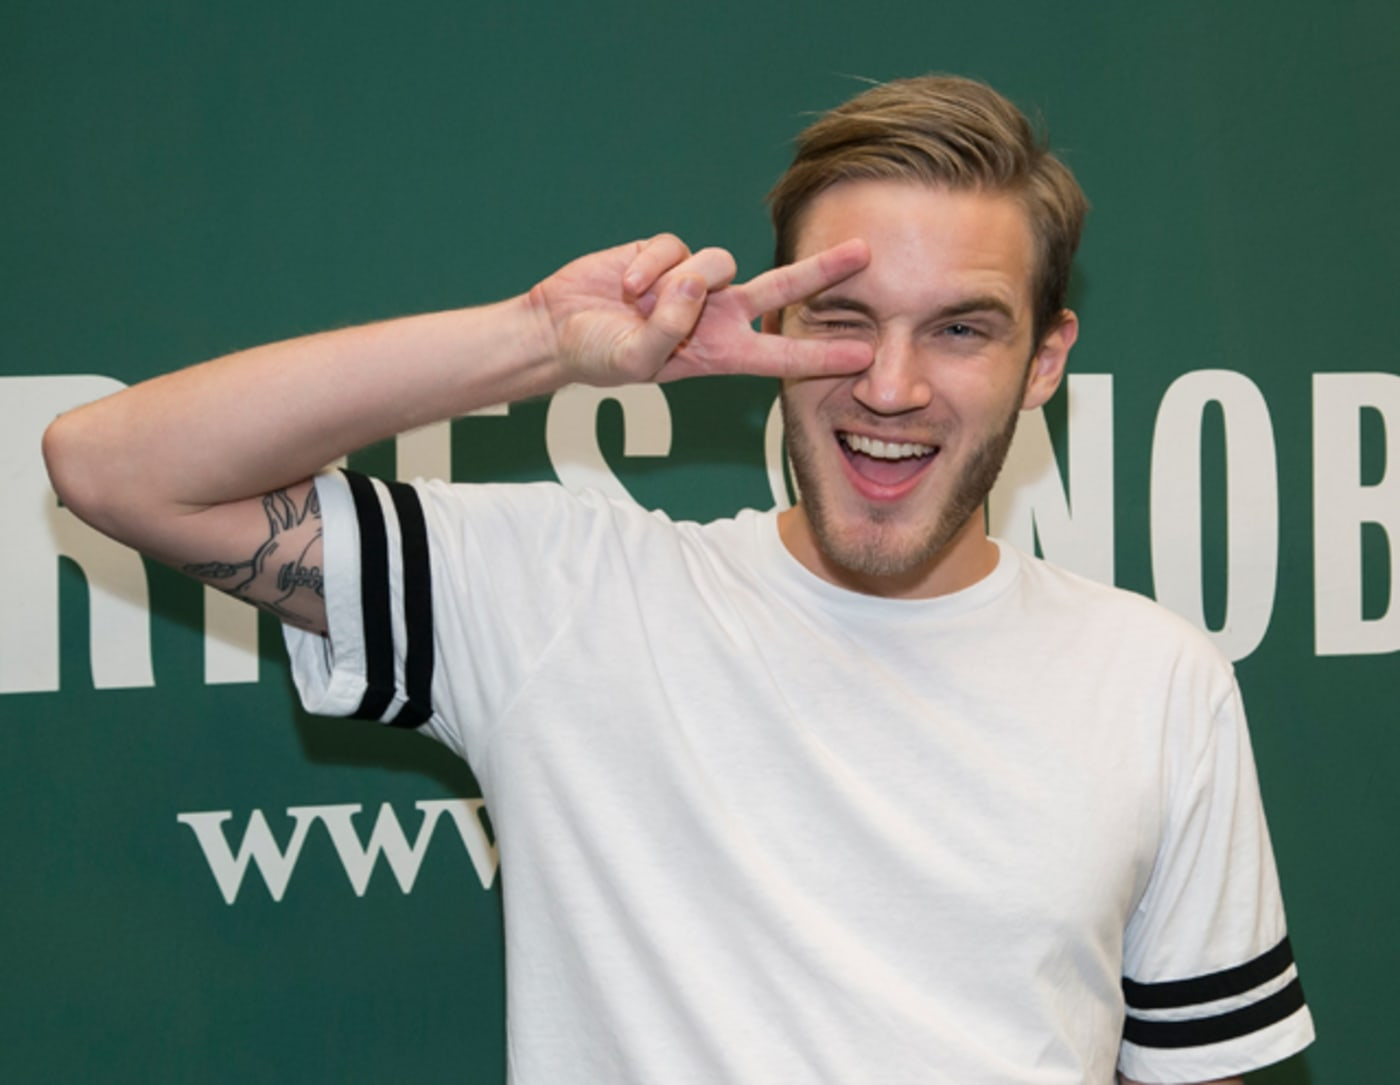 PewDiePie signs his new book 'This Book Loves You' at Barnes & Noble